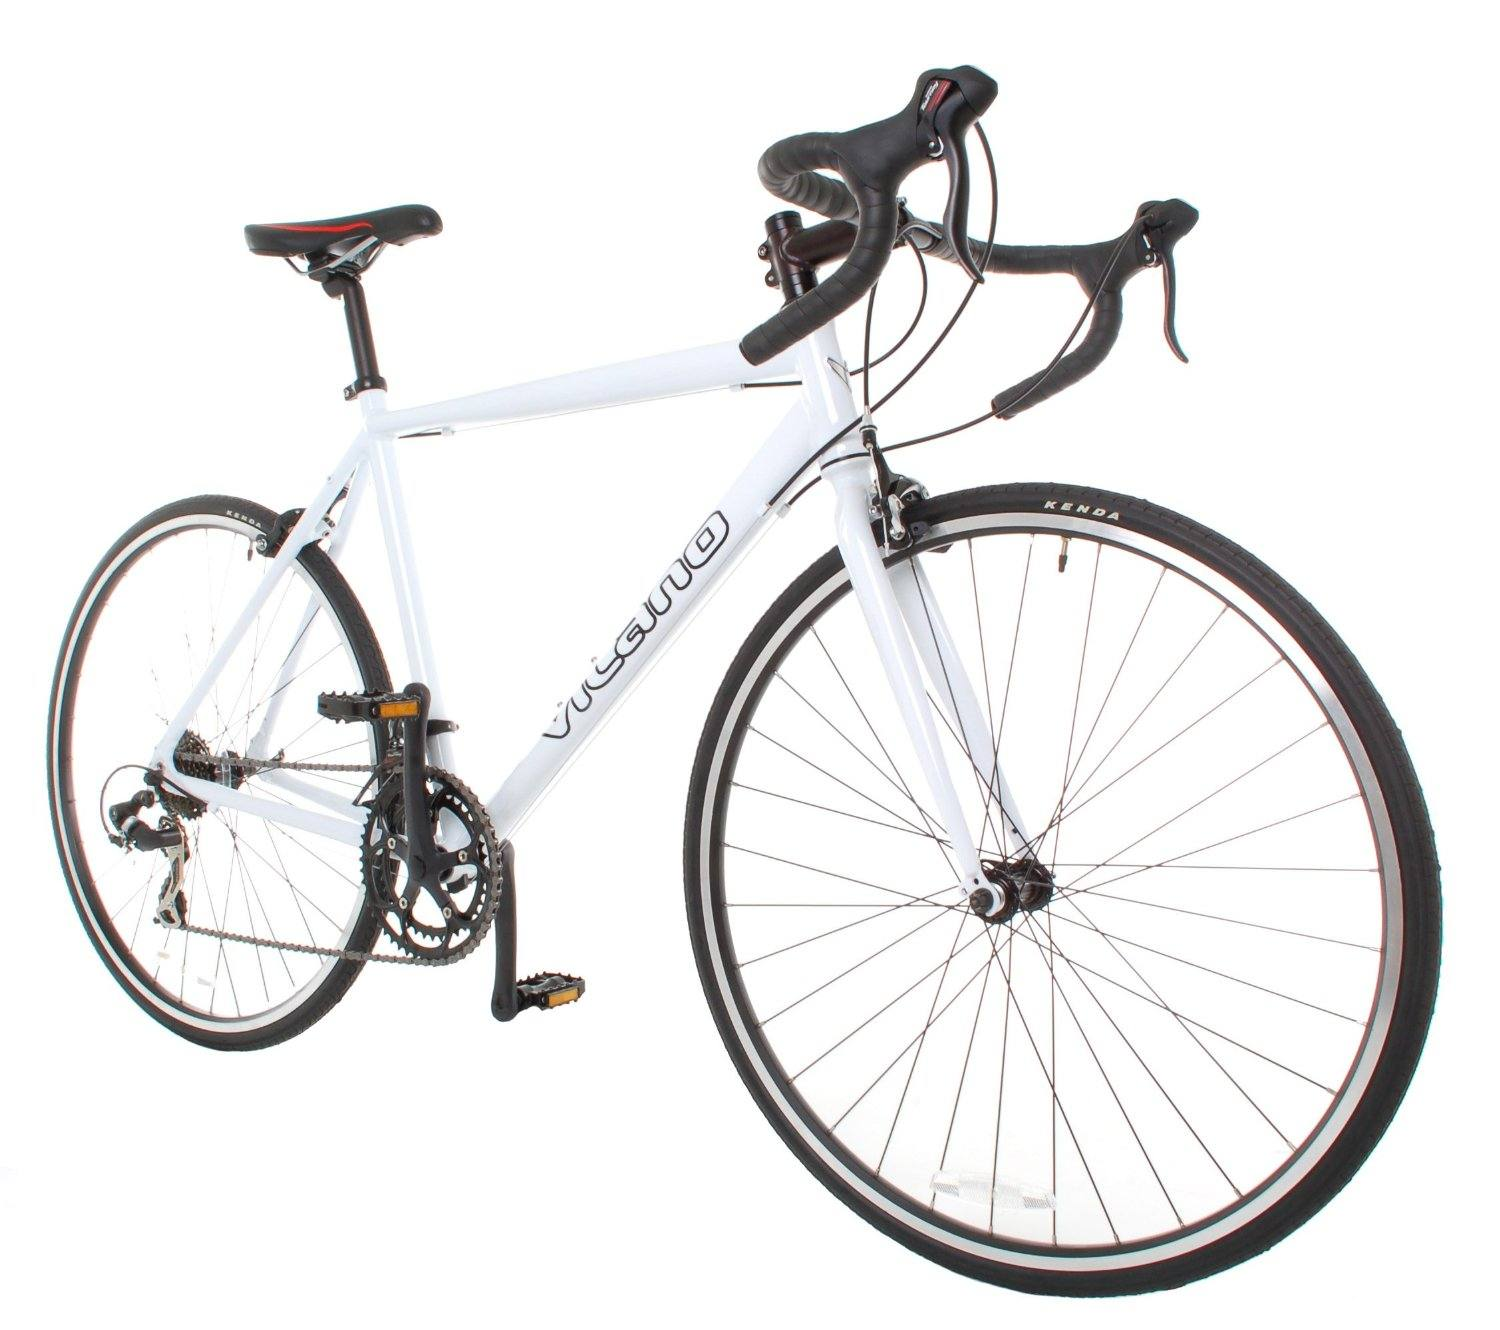 6 Affordable Road Bikes Under  500 - Road Bike Adventure - Your ... 24b01d45ea